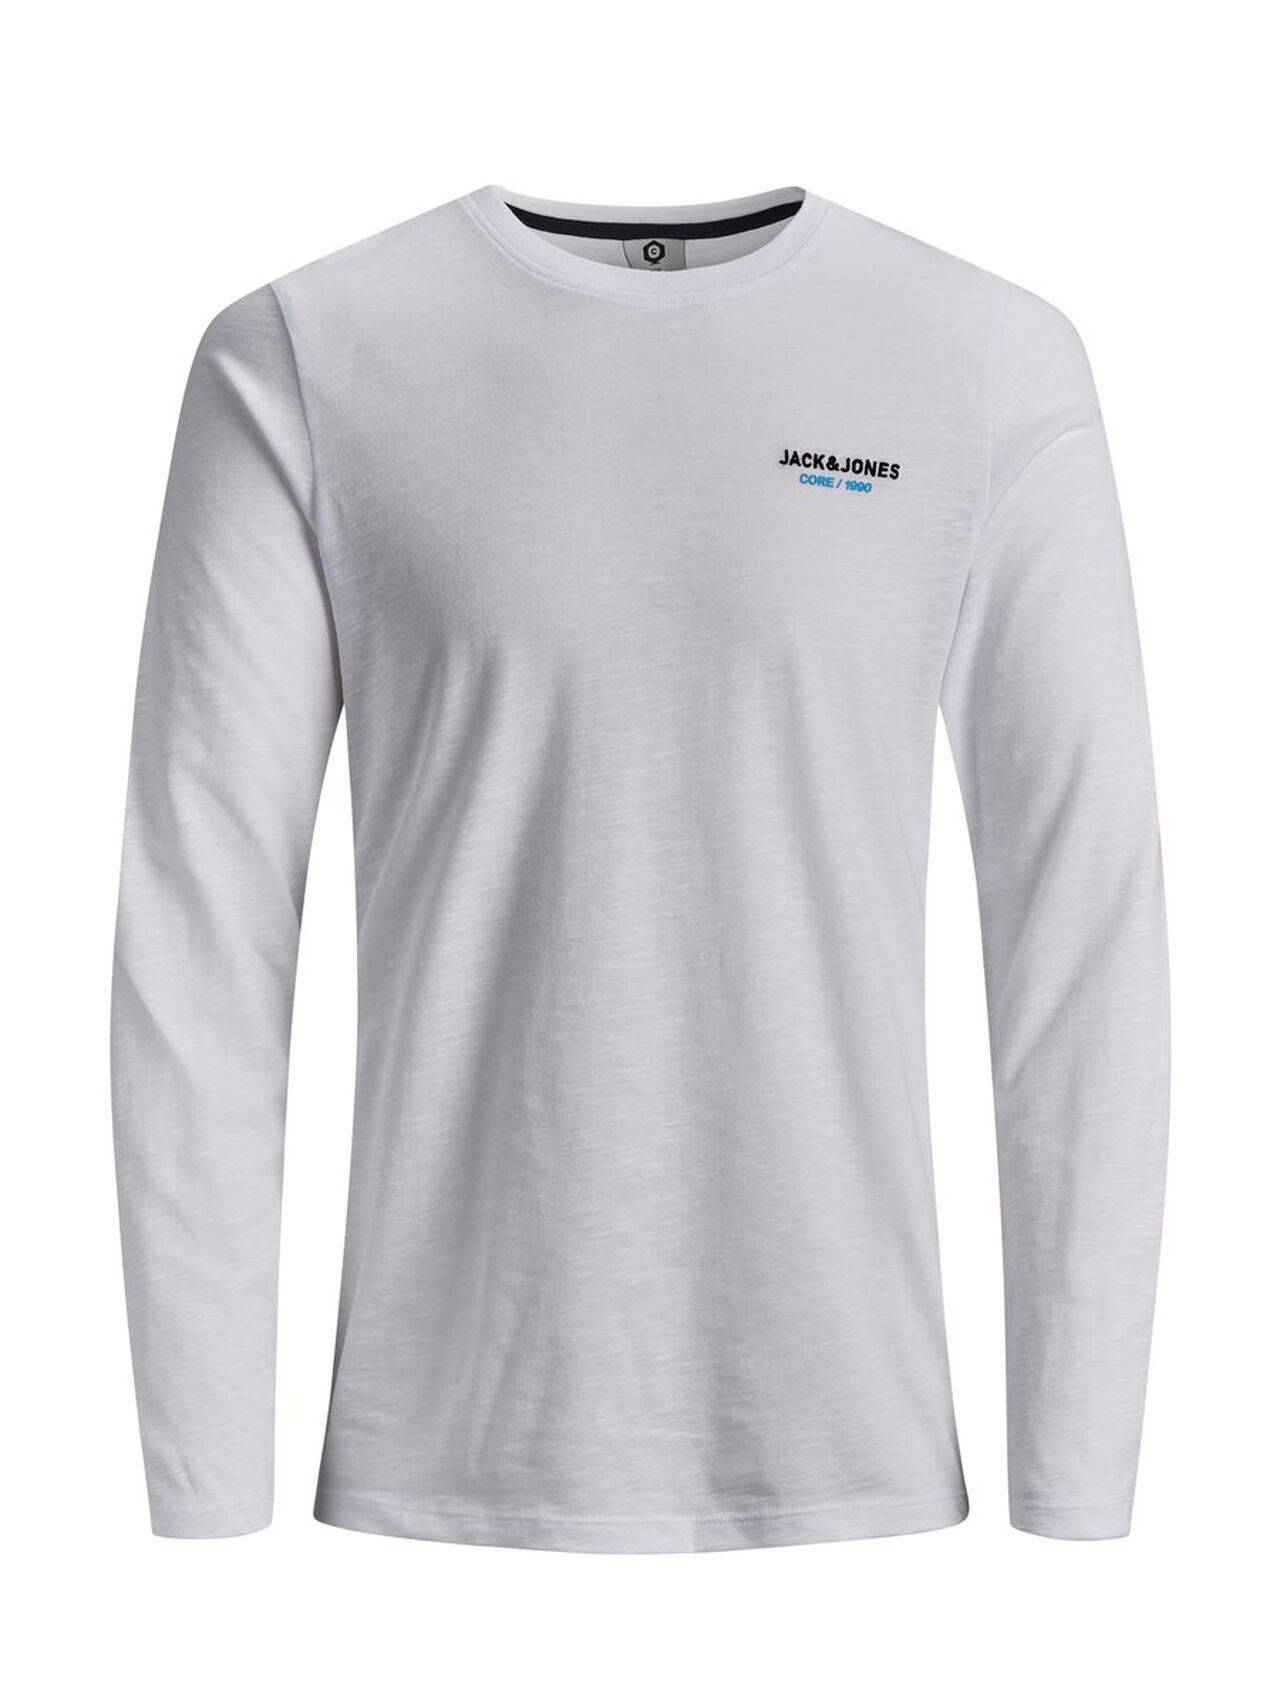 JACK & JONES Slim Fit Long-sleeved T-shirt Men White White